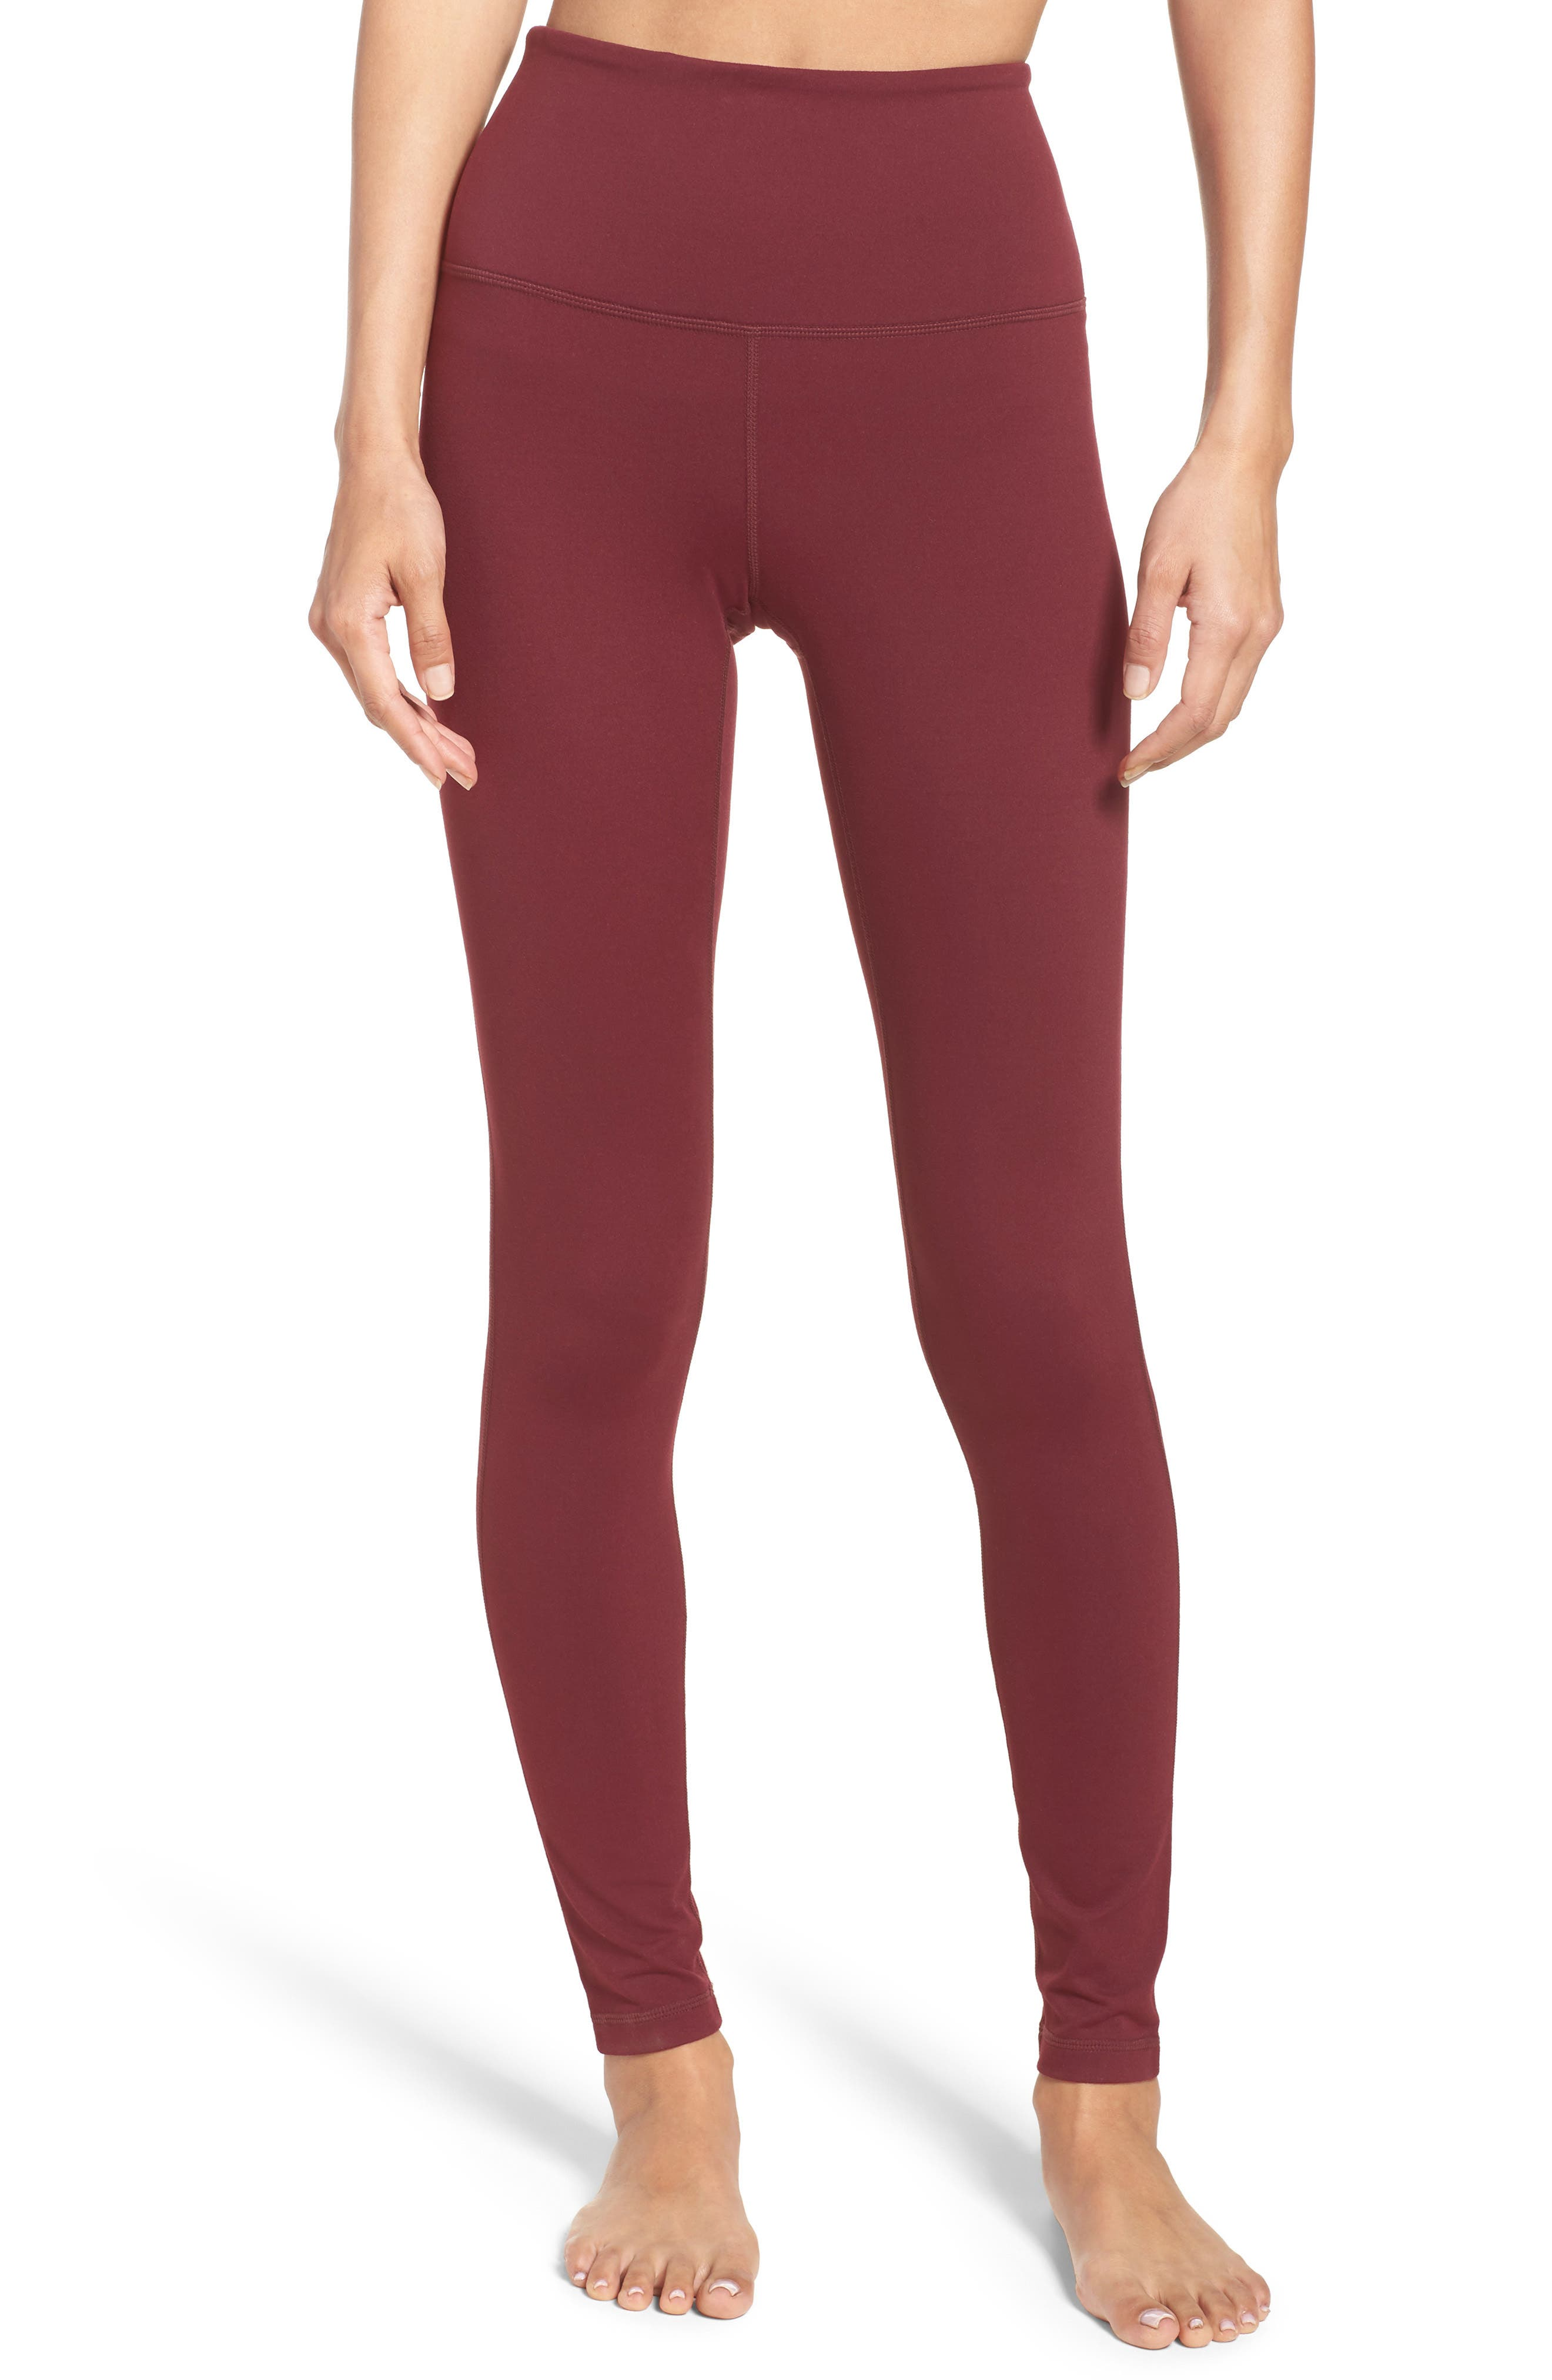 Zella Live In High Waist Leggings